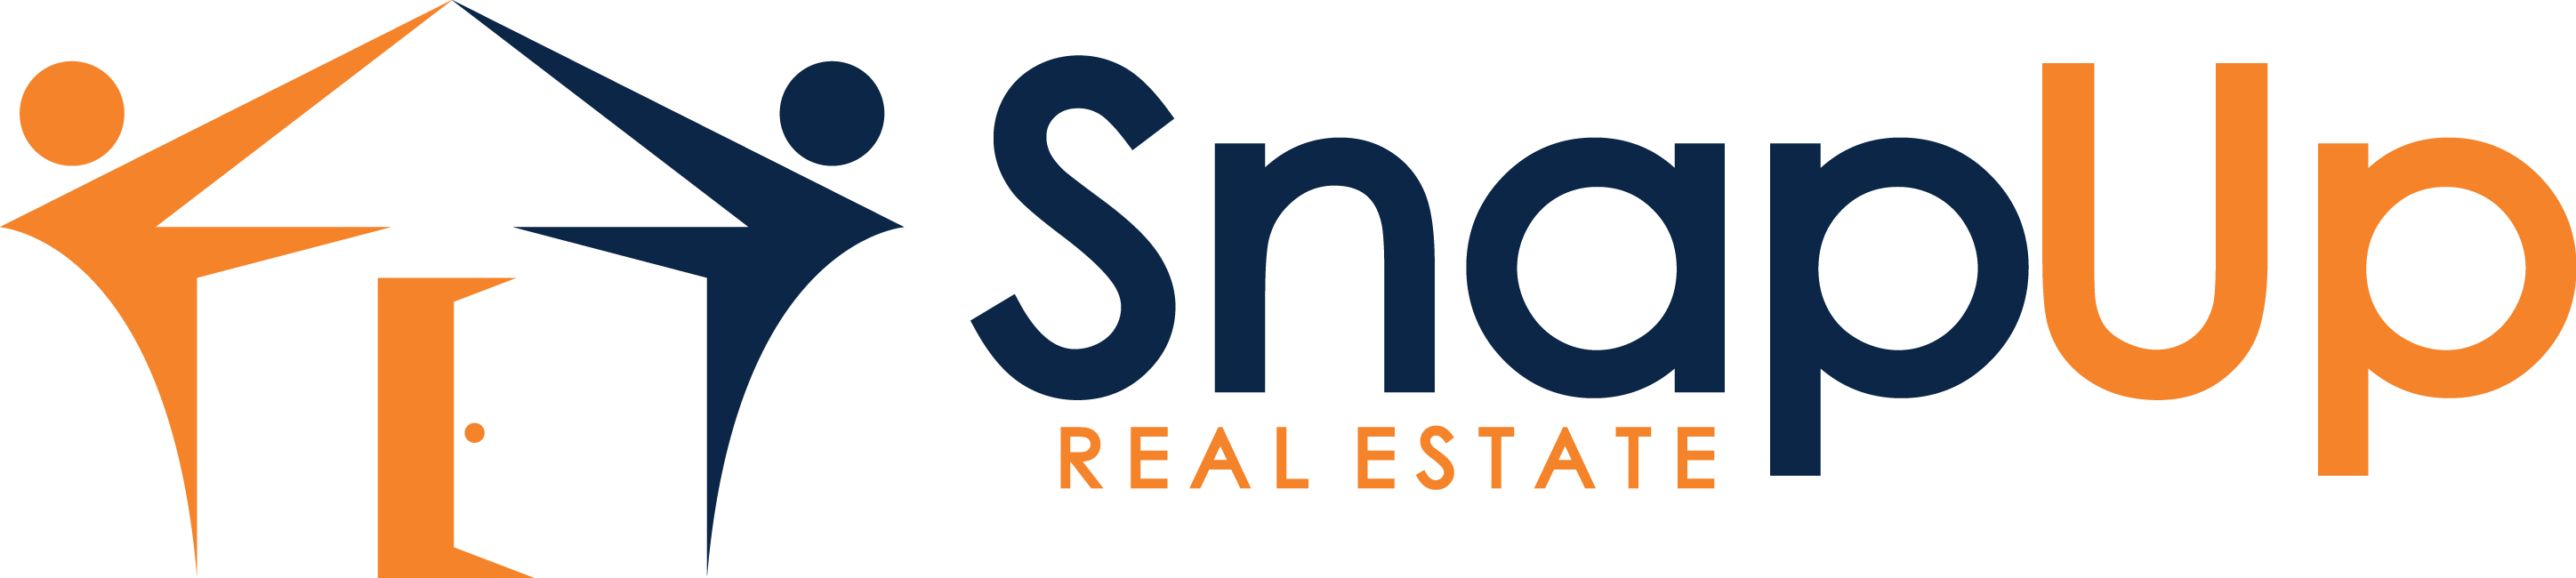 Saskatchewan (SK) Cities with Property Listings For Sale or Rent